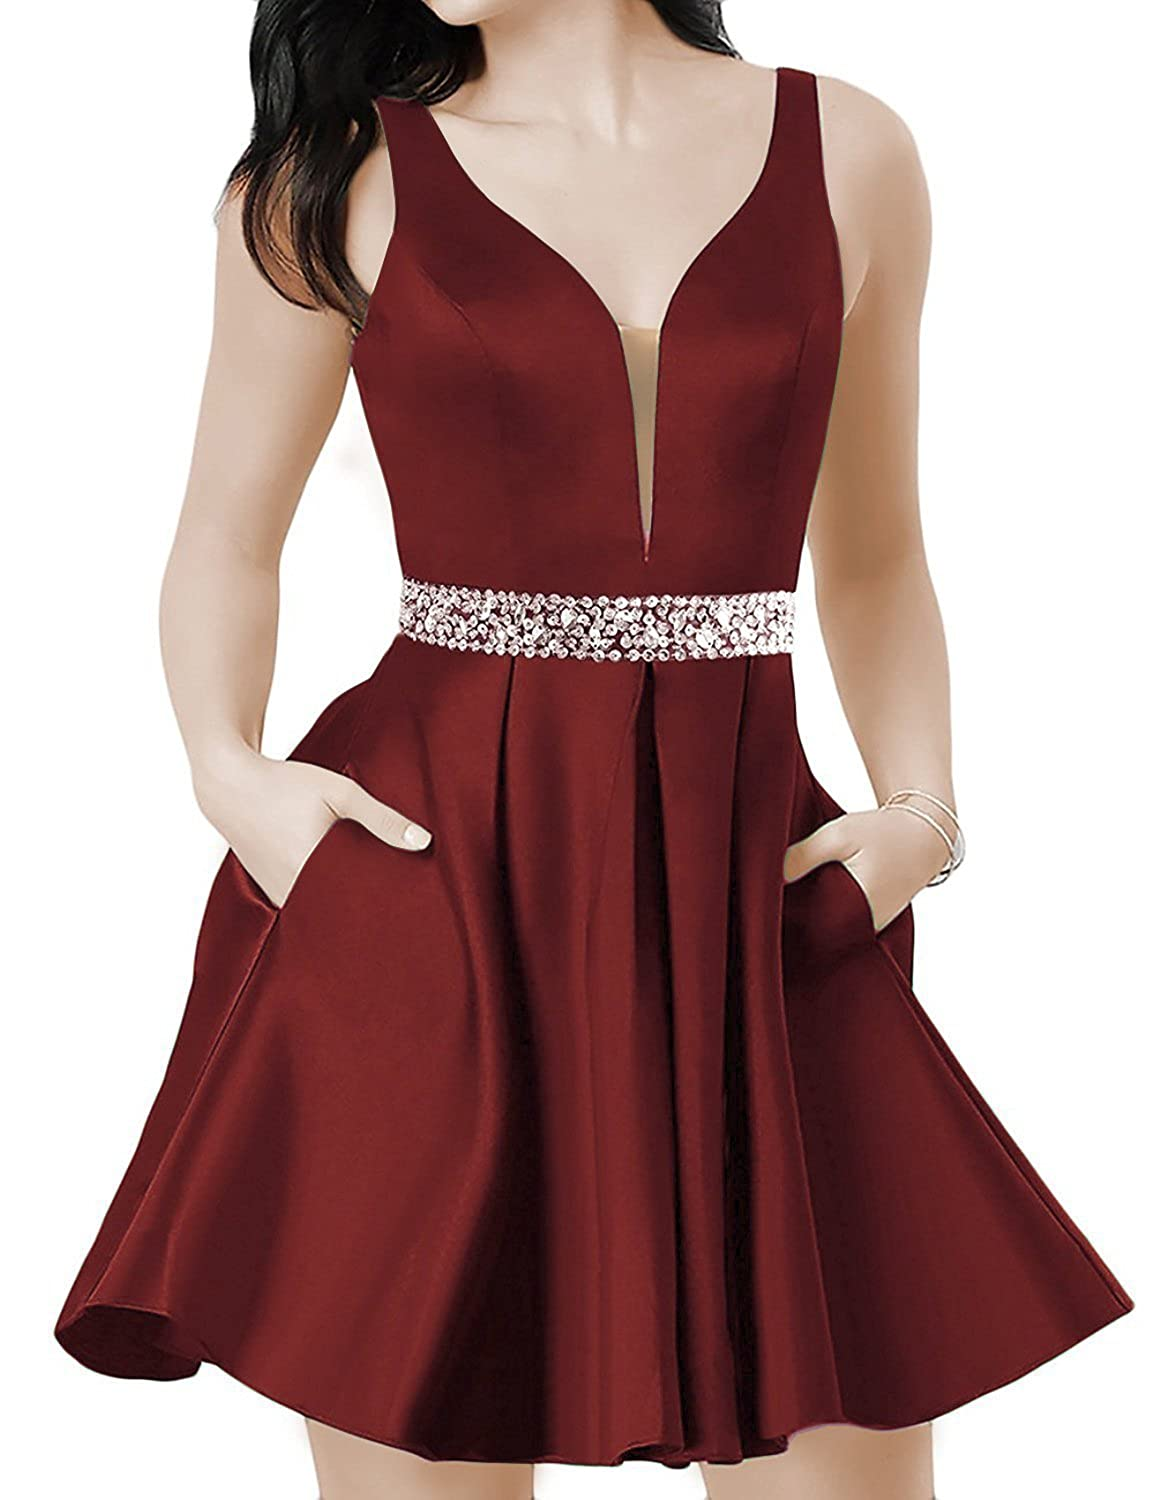 Burgundya LUBridal Women's Sexy V Neck Short Satin Prom Dresses with Pockets 2018 Backless Evening Party Gown